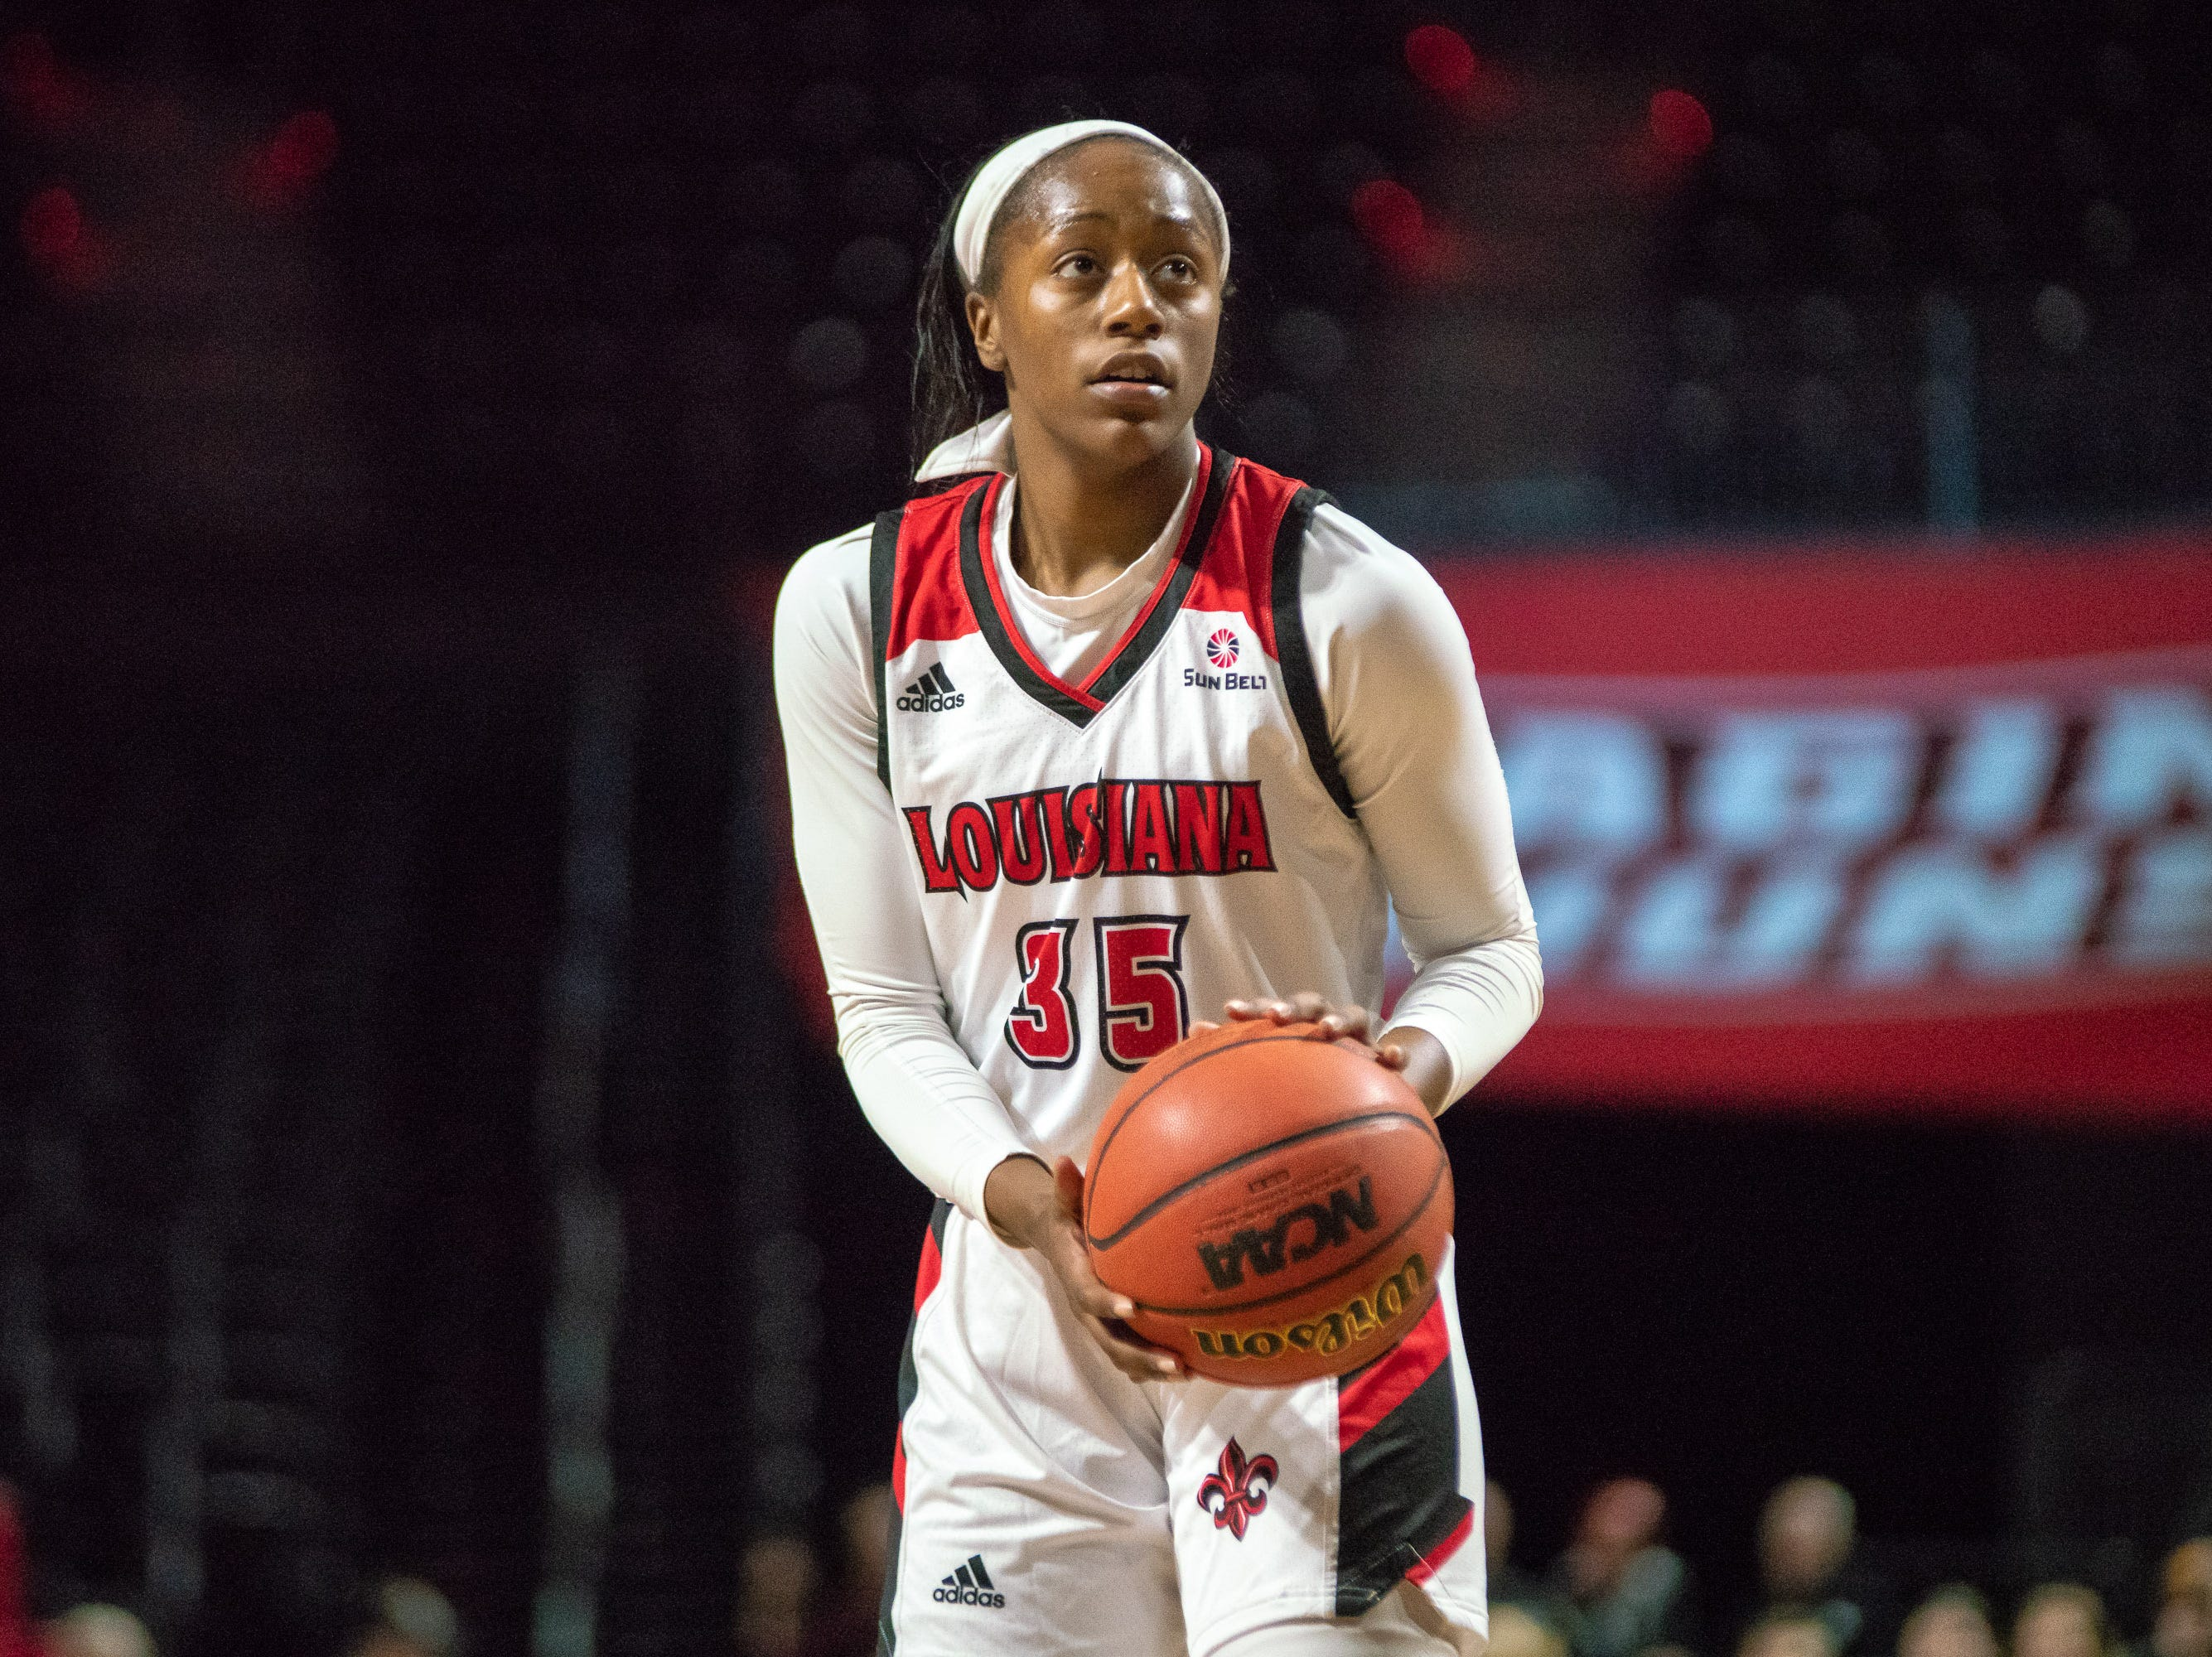 UL's Ty'Reona Doucet shoots from the foul line as the Ragin' Cajuns play against the Georgia State Panthers at the Cajundome on January 10, 2019.